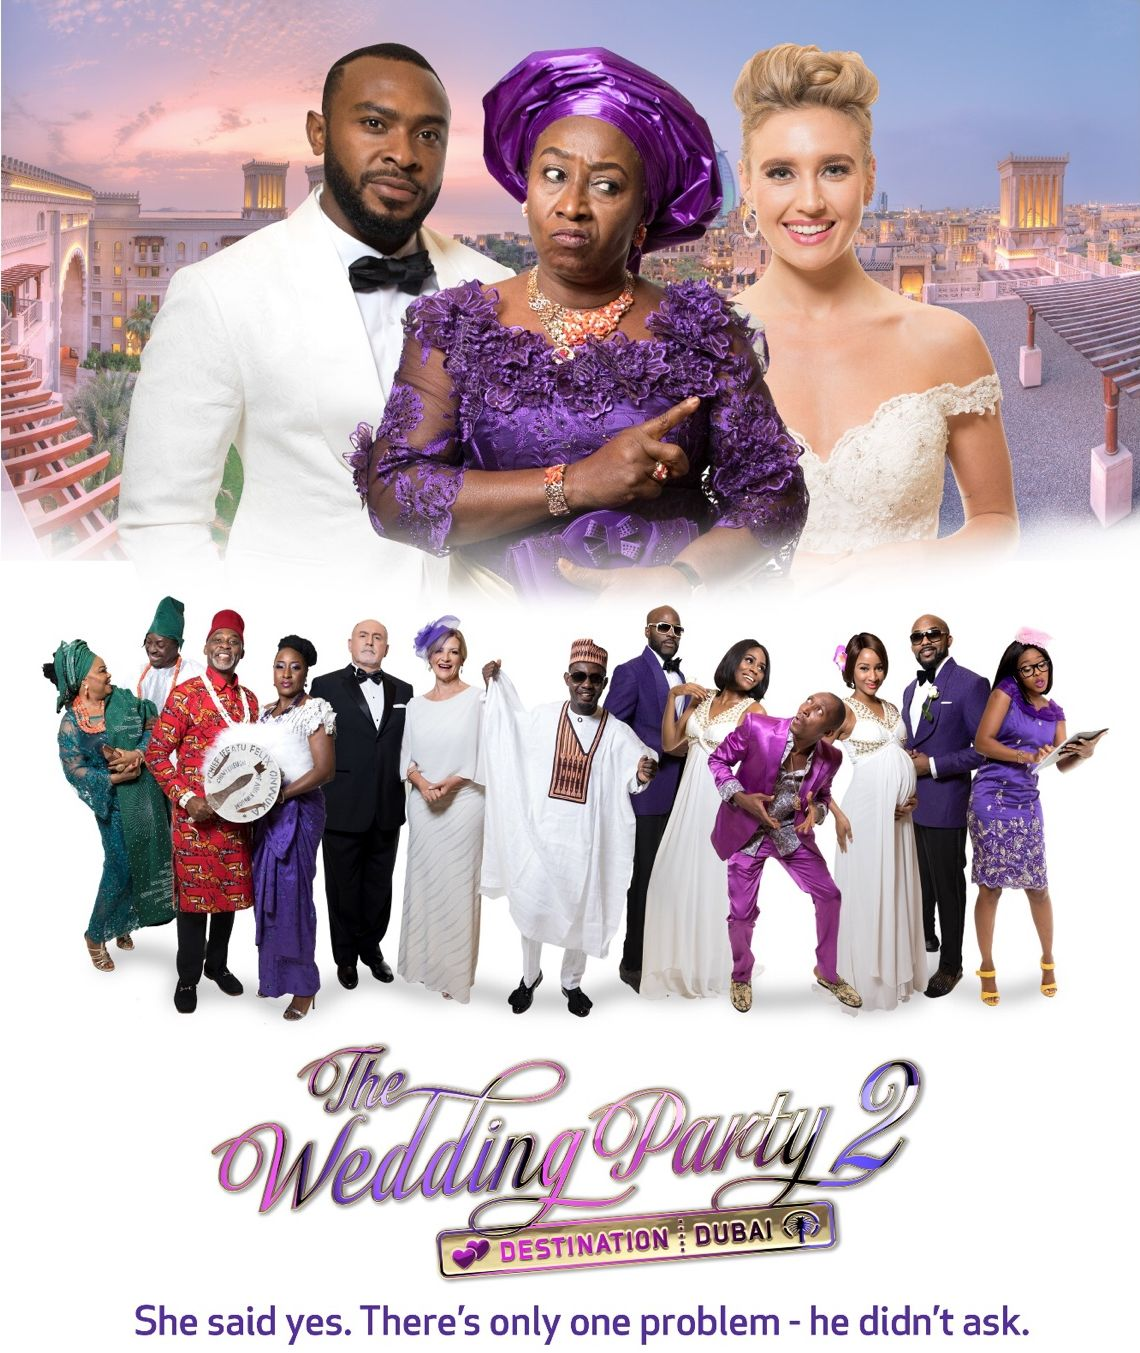 The Wedding Party 2: Destination Dubai (2017)